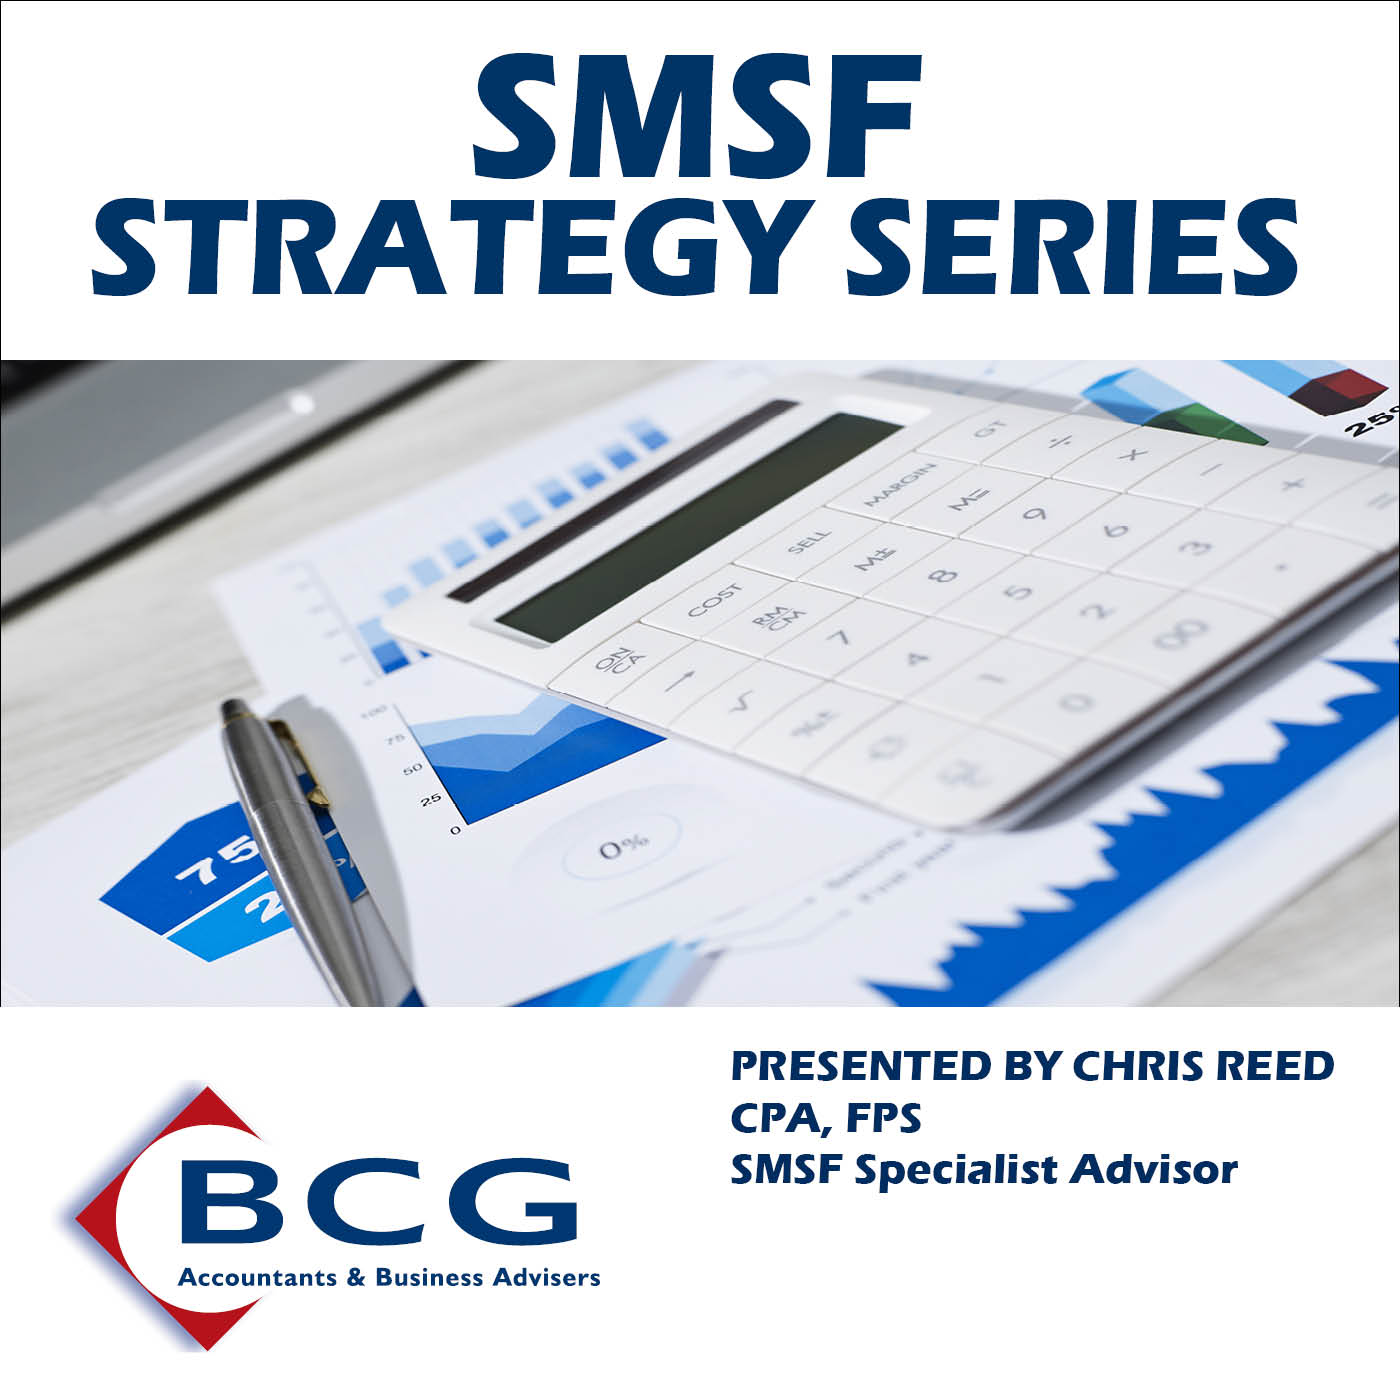 SMSF Strategy Series: Superannuation | Fund Structure | Estate Planning | Gearing | Family Super Fund | Tax Planning